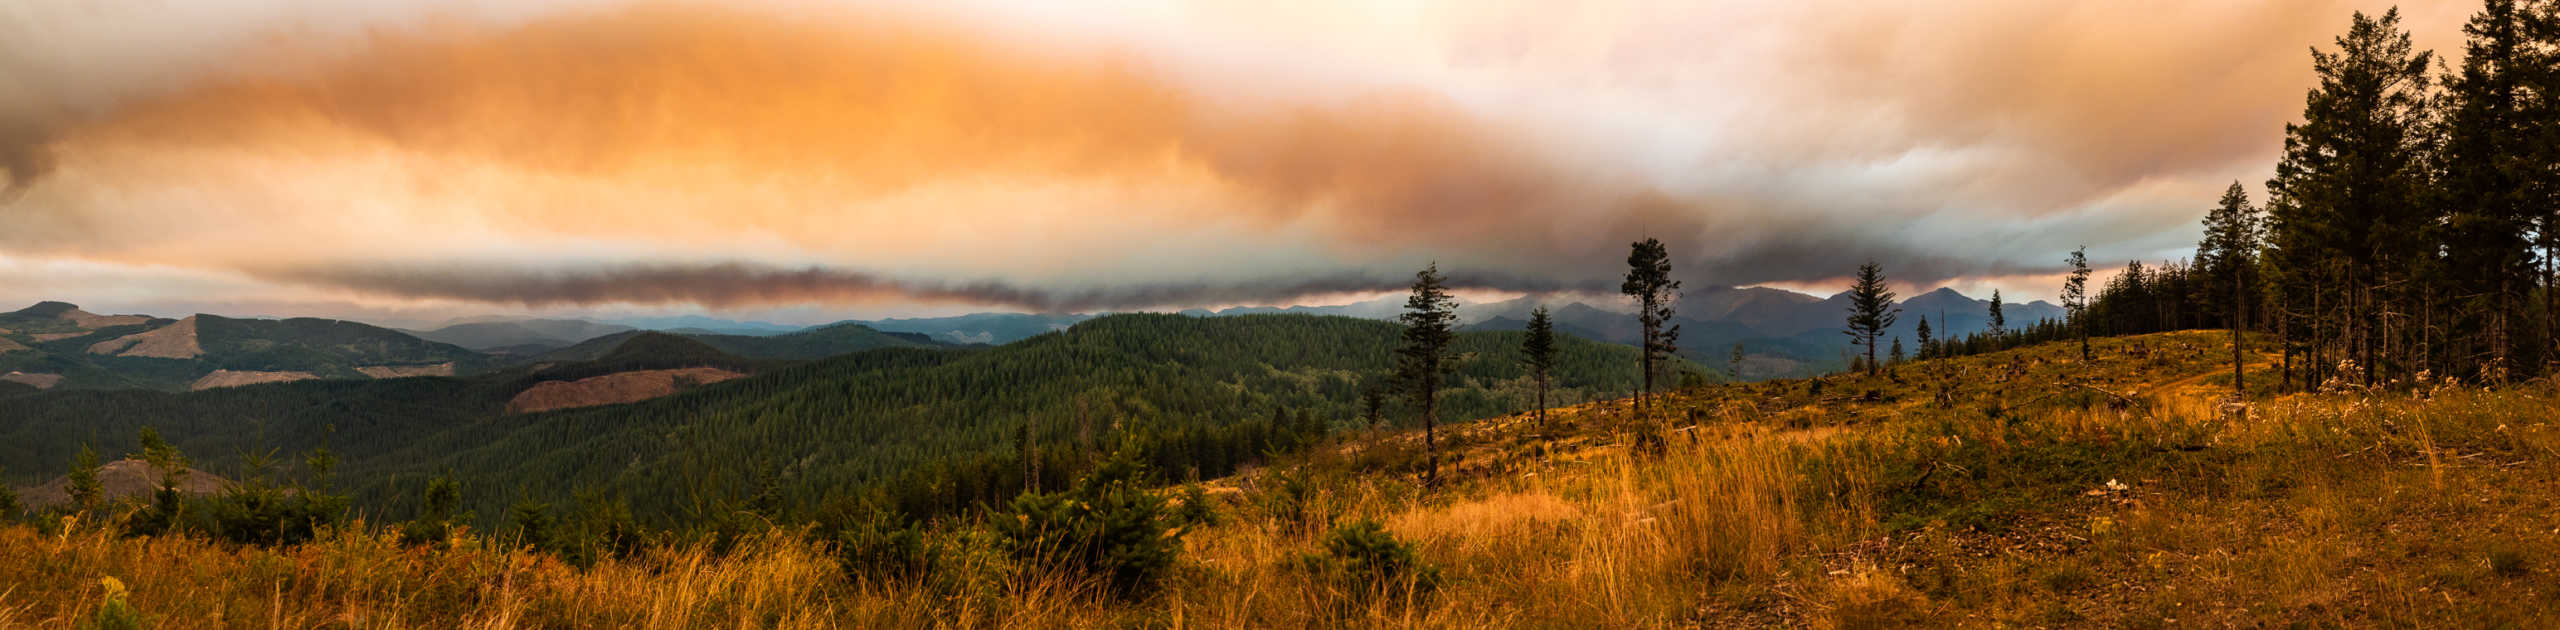 Panoramic View of Tillamook Wilderness During historic Wildfire Season